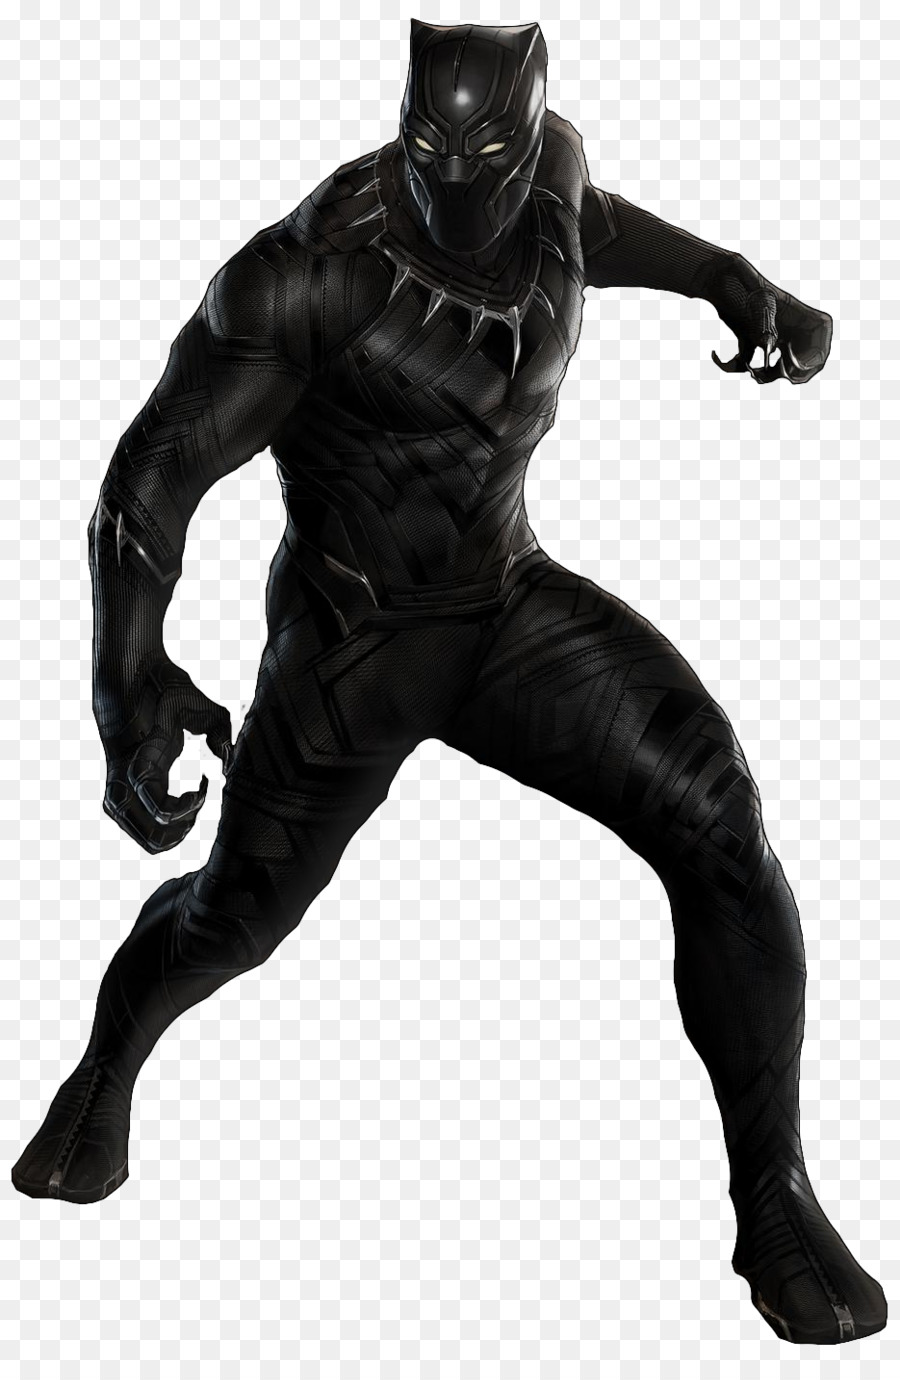 Black panther clipart marvel 3 » Clipart Station.